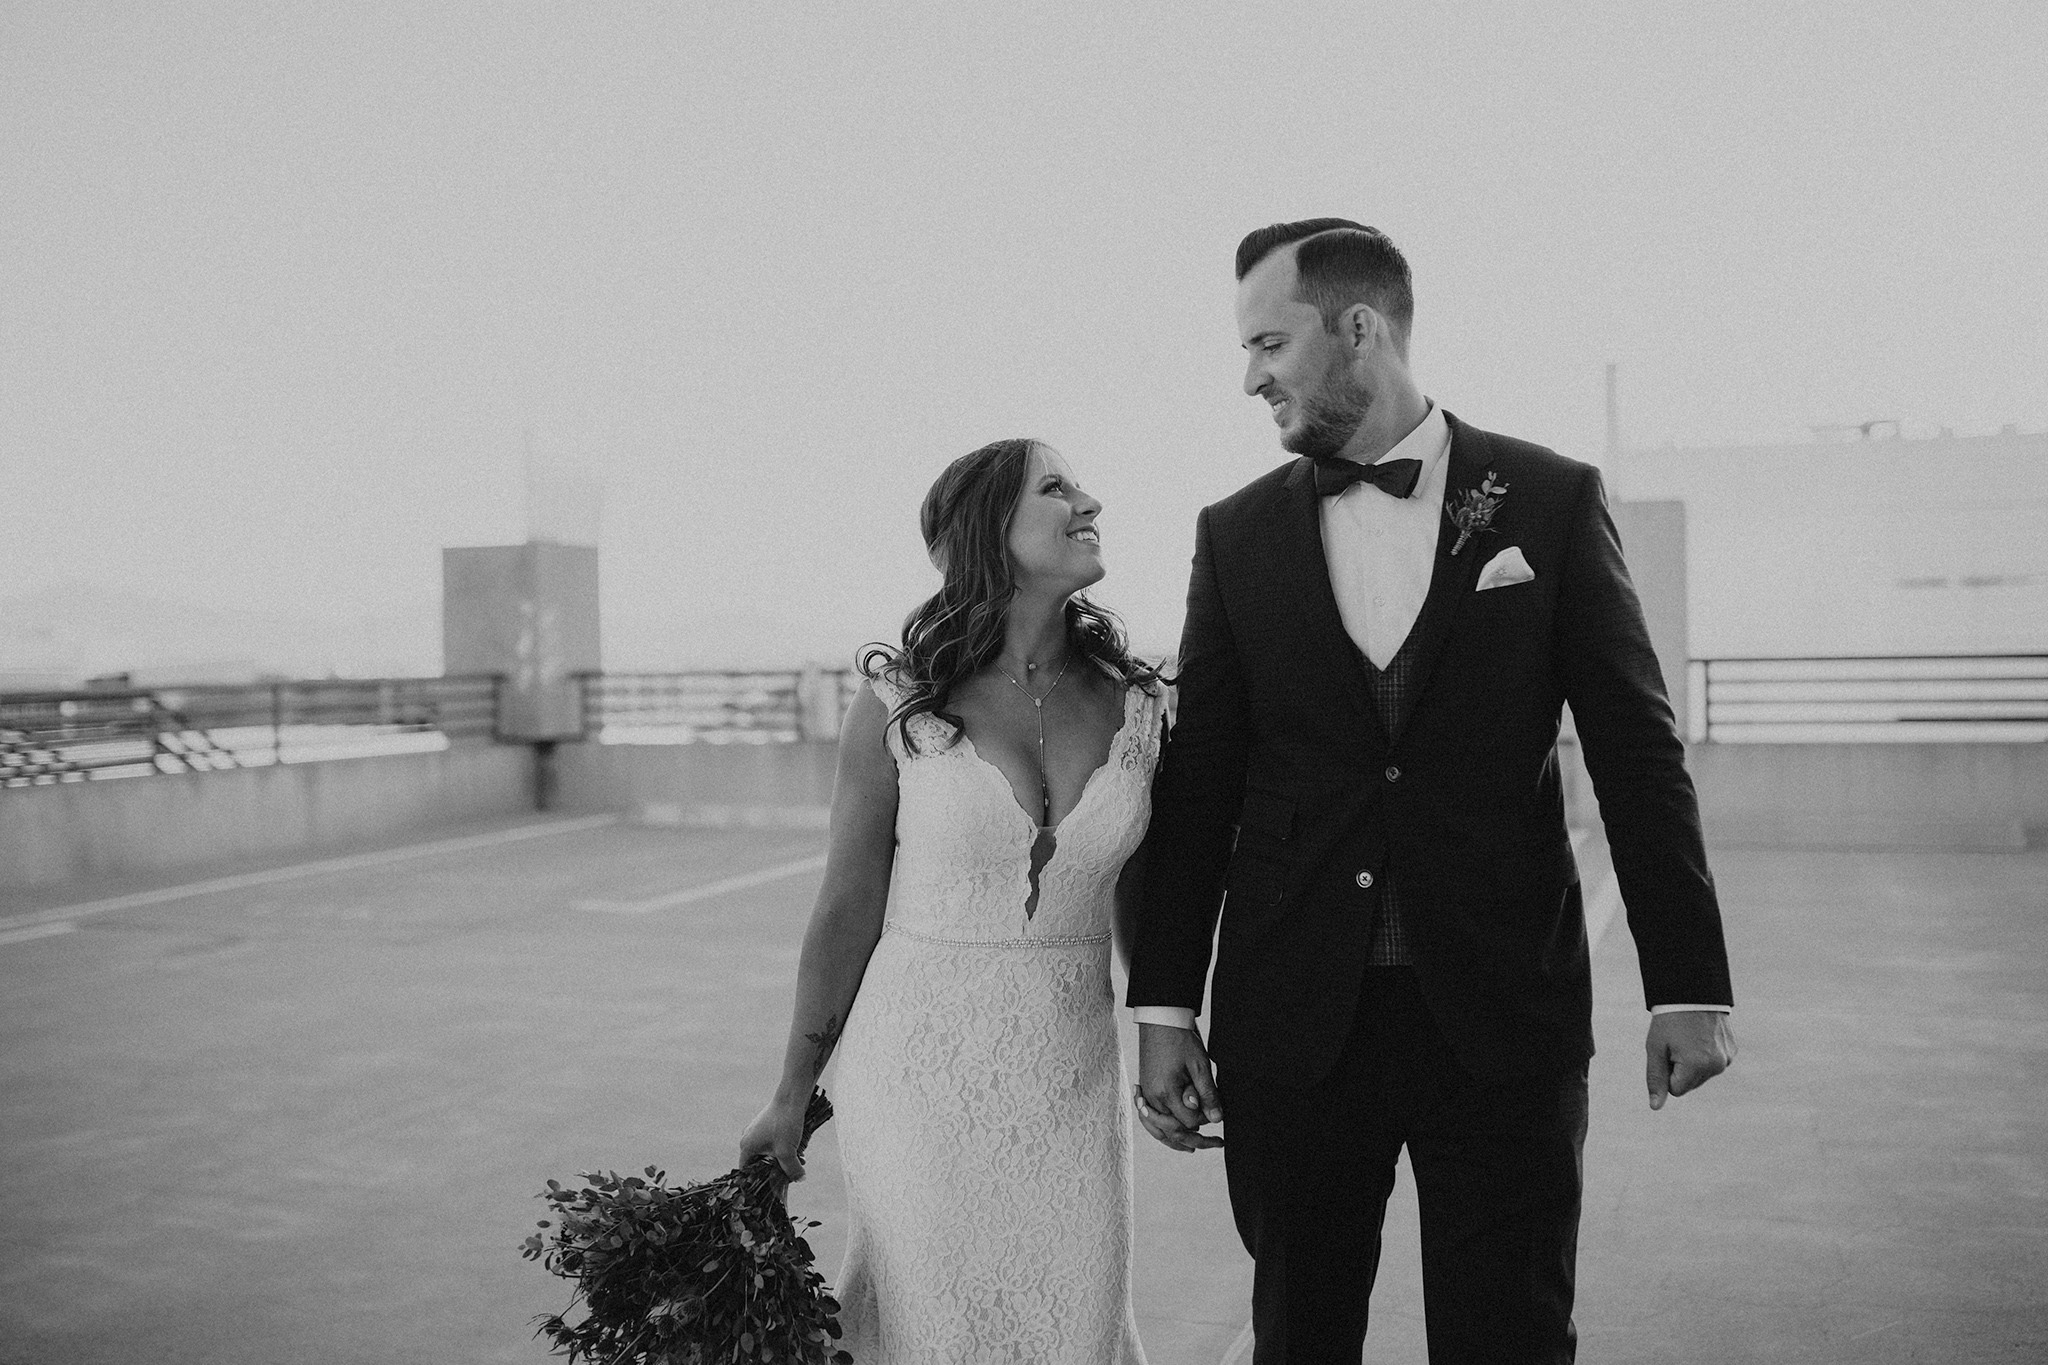 Our BIG Takeaways After The Wedding | Lugo & Co. in Phoenix, AZ